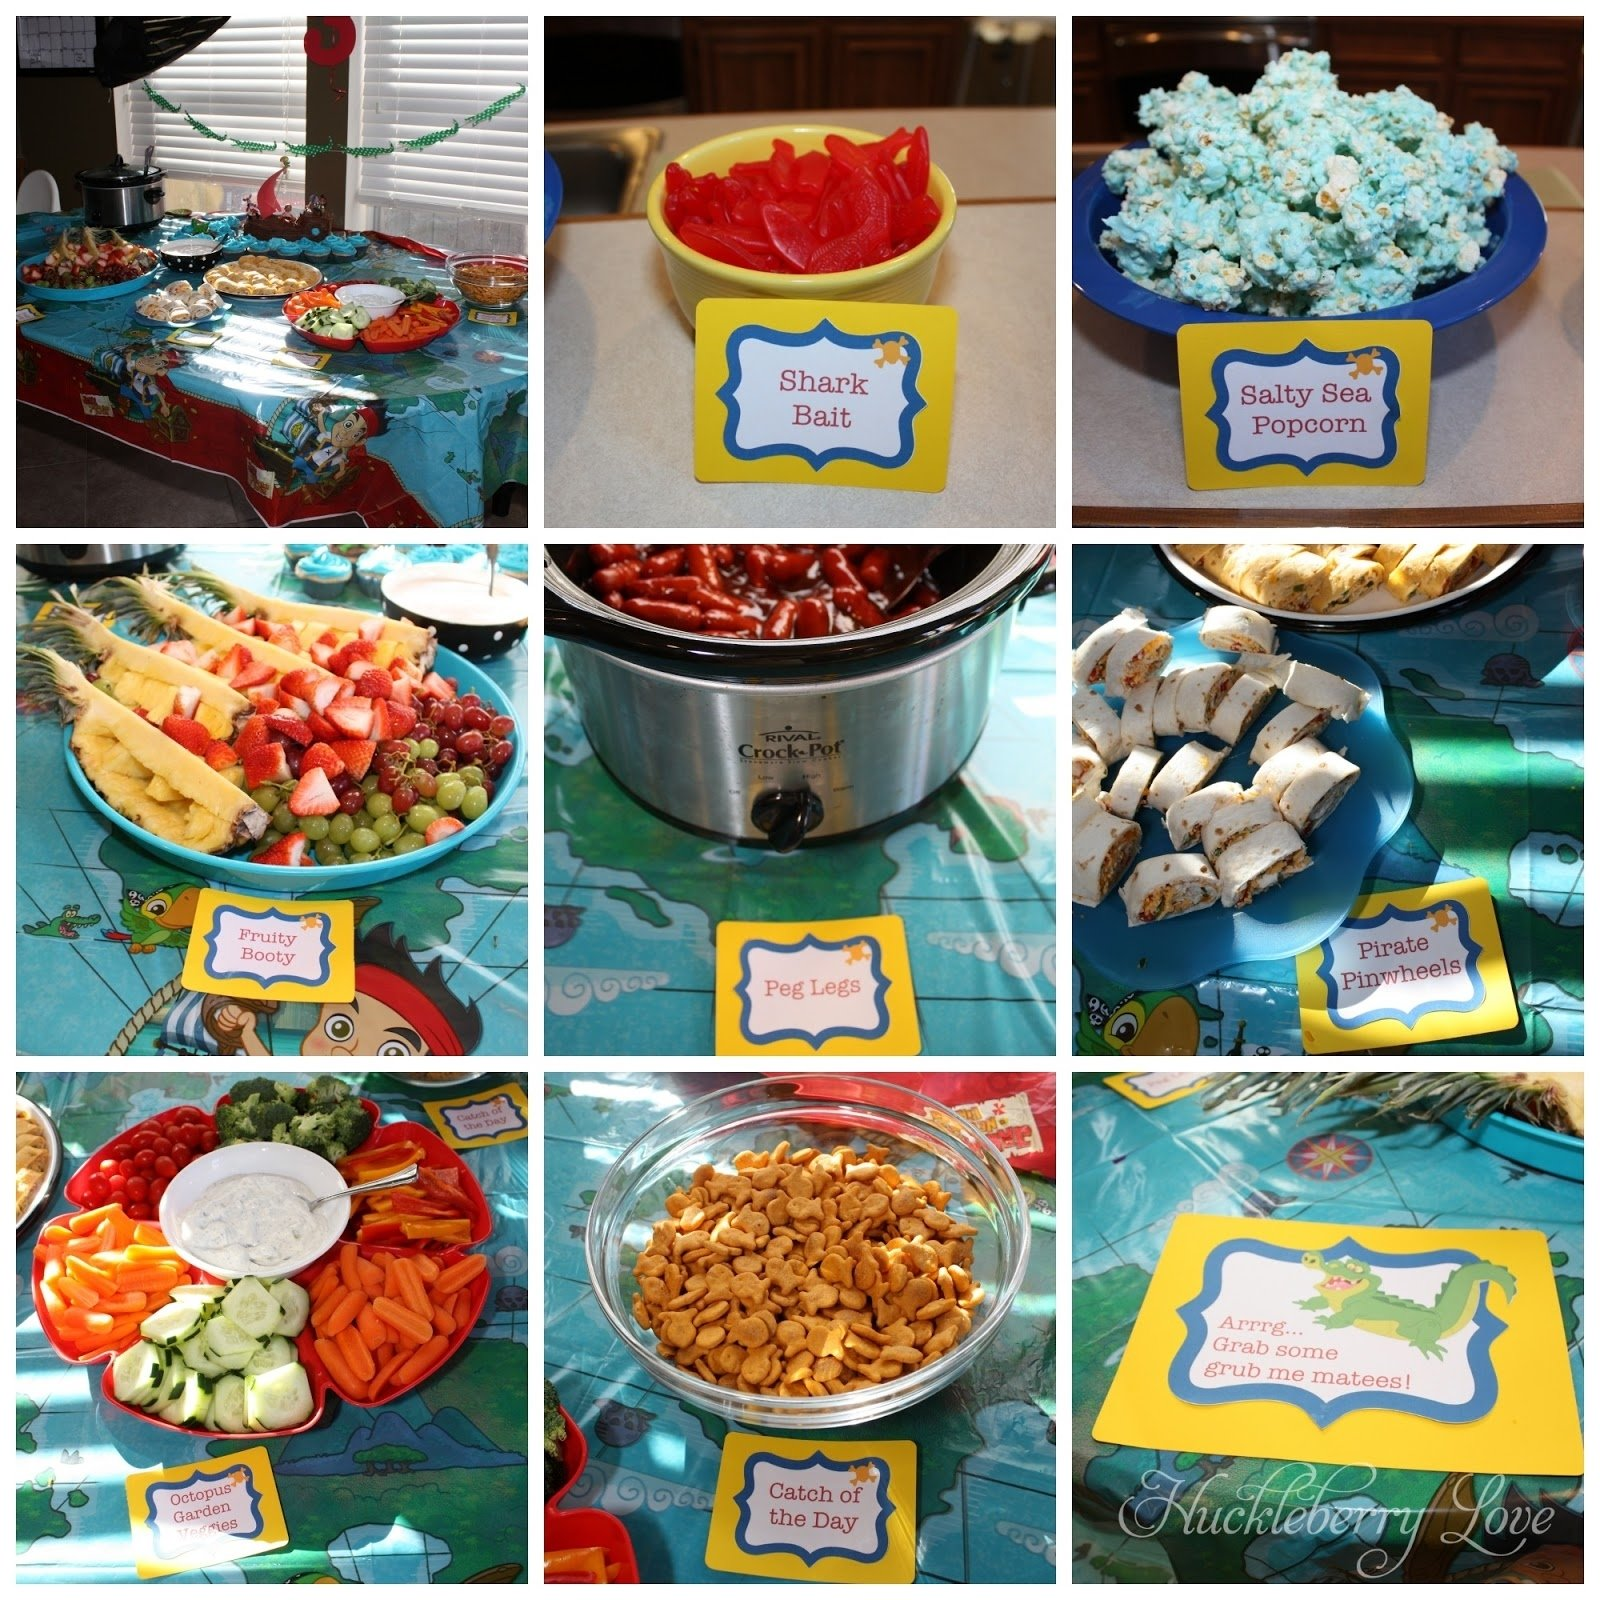 10 Stylish Pirate Birthday Party Food Ideas huckleberry love arrgh mateys pirate themed birthday party 2020